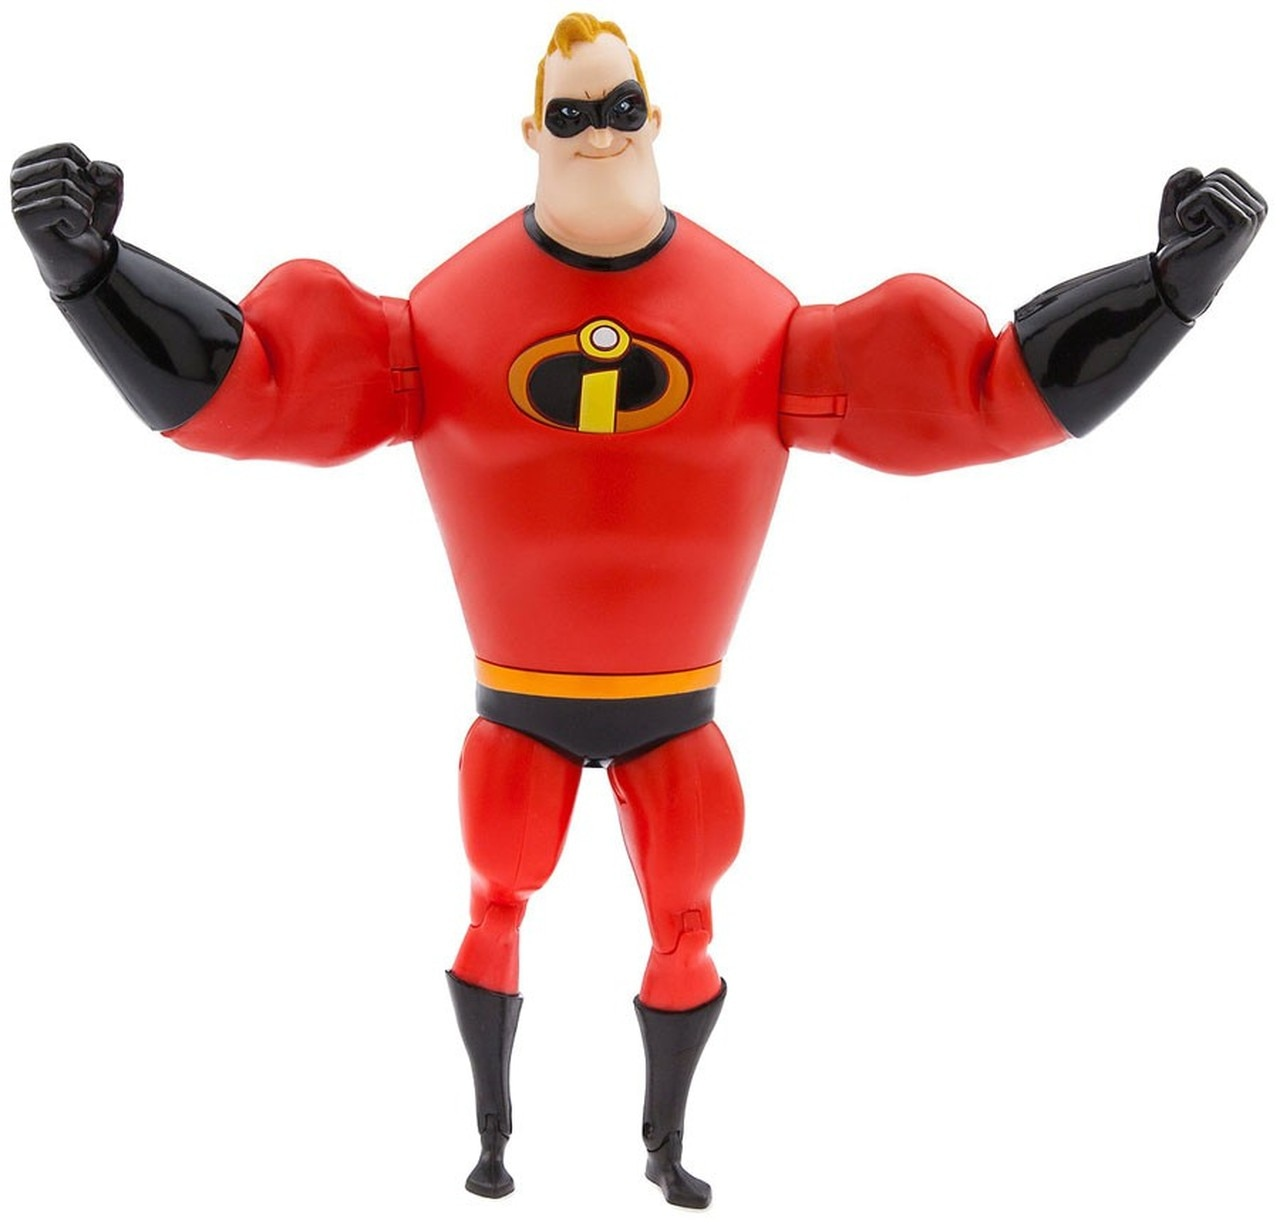 Disney Pixar - Les Indestructibles 2 : Figurine parlante Mr Indestructible